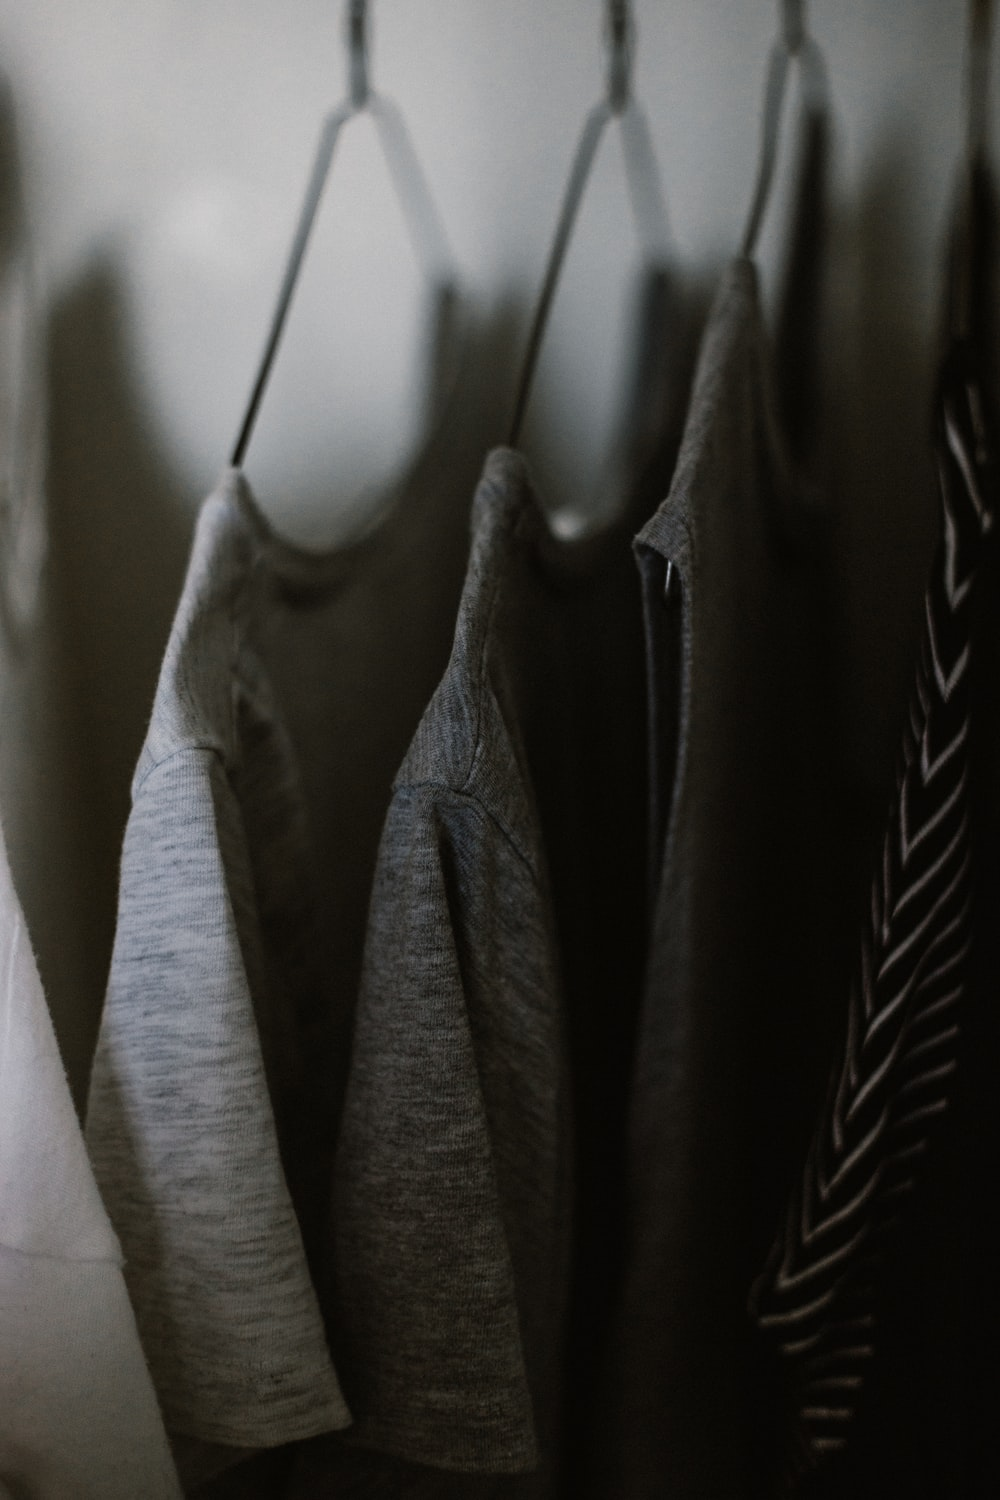 selective focus photography of hanged three gray tee shirts